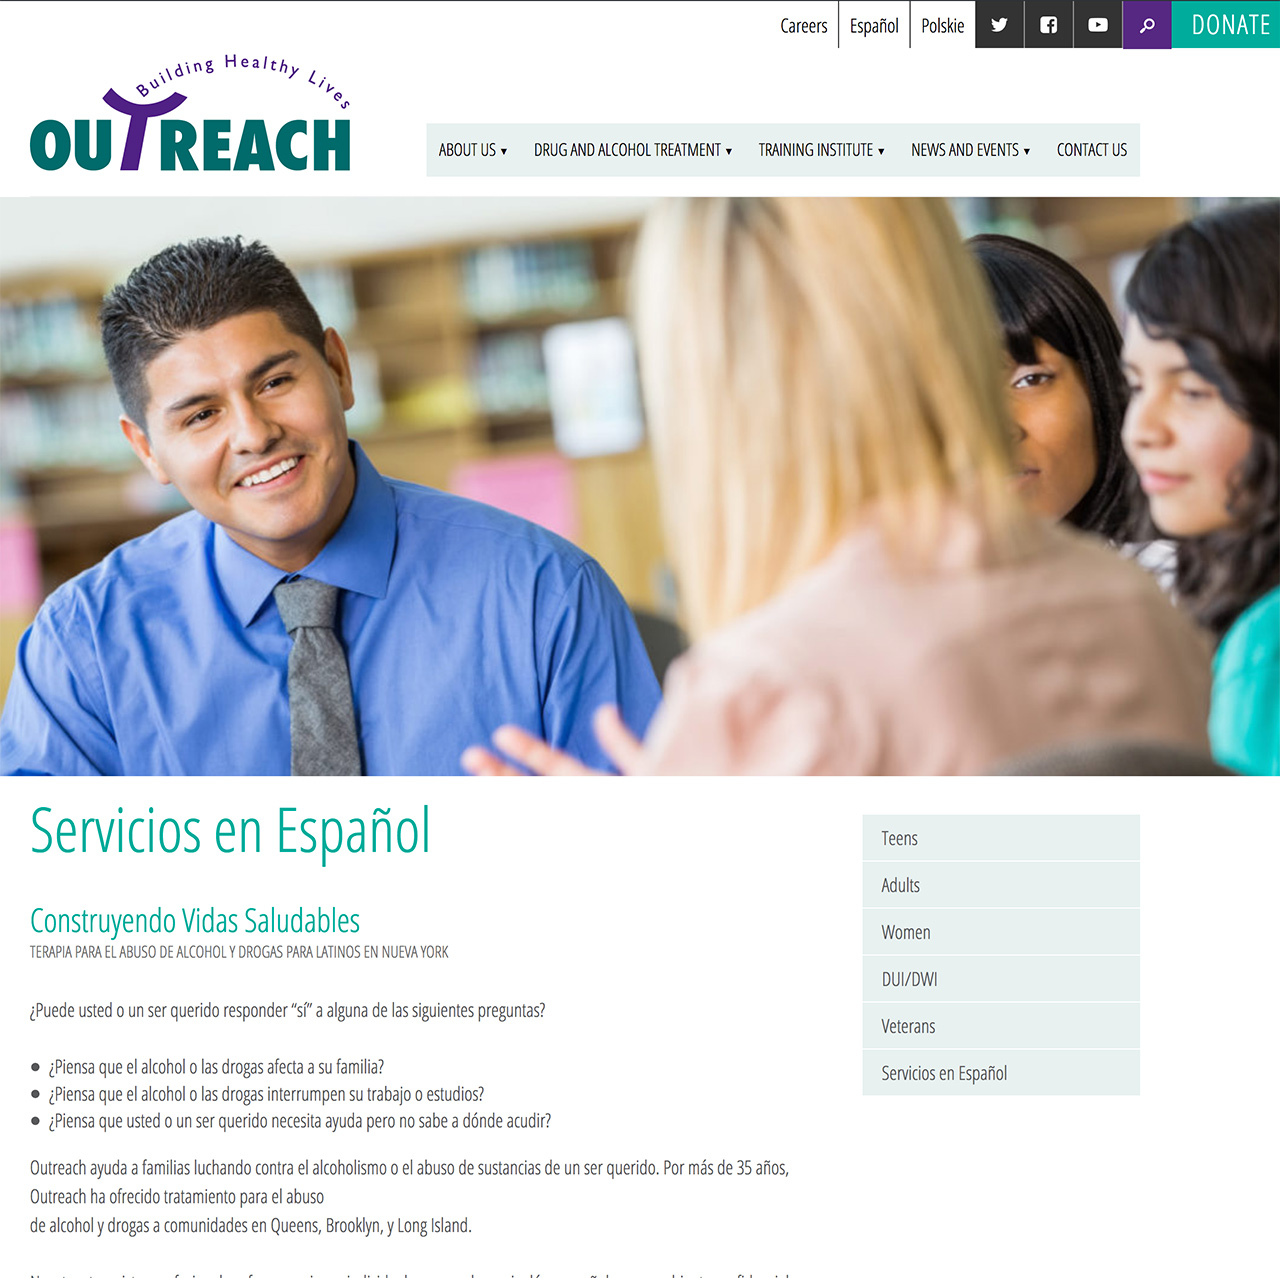 Outreach Development Corporation: Outreach Services and Editable Sidebar Quick Links